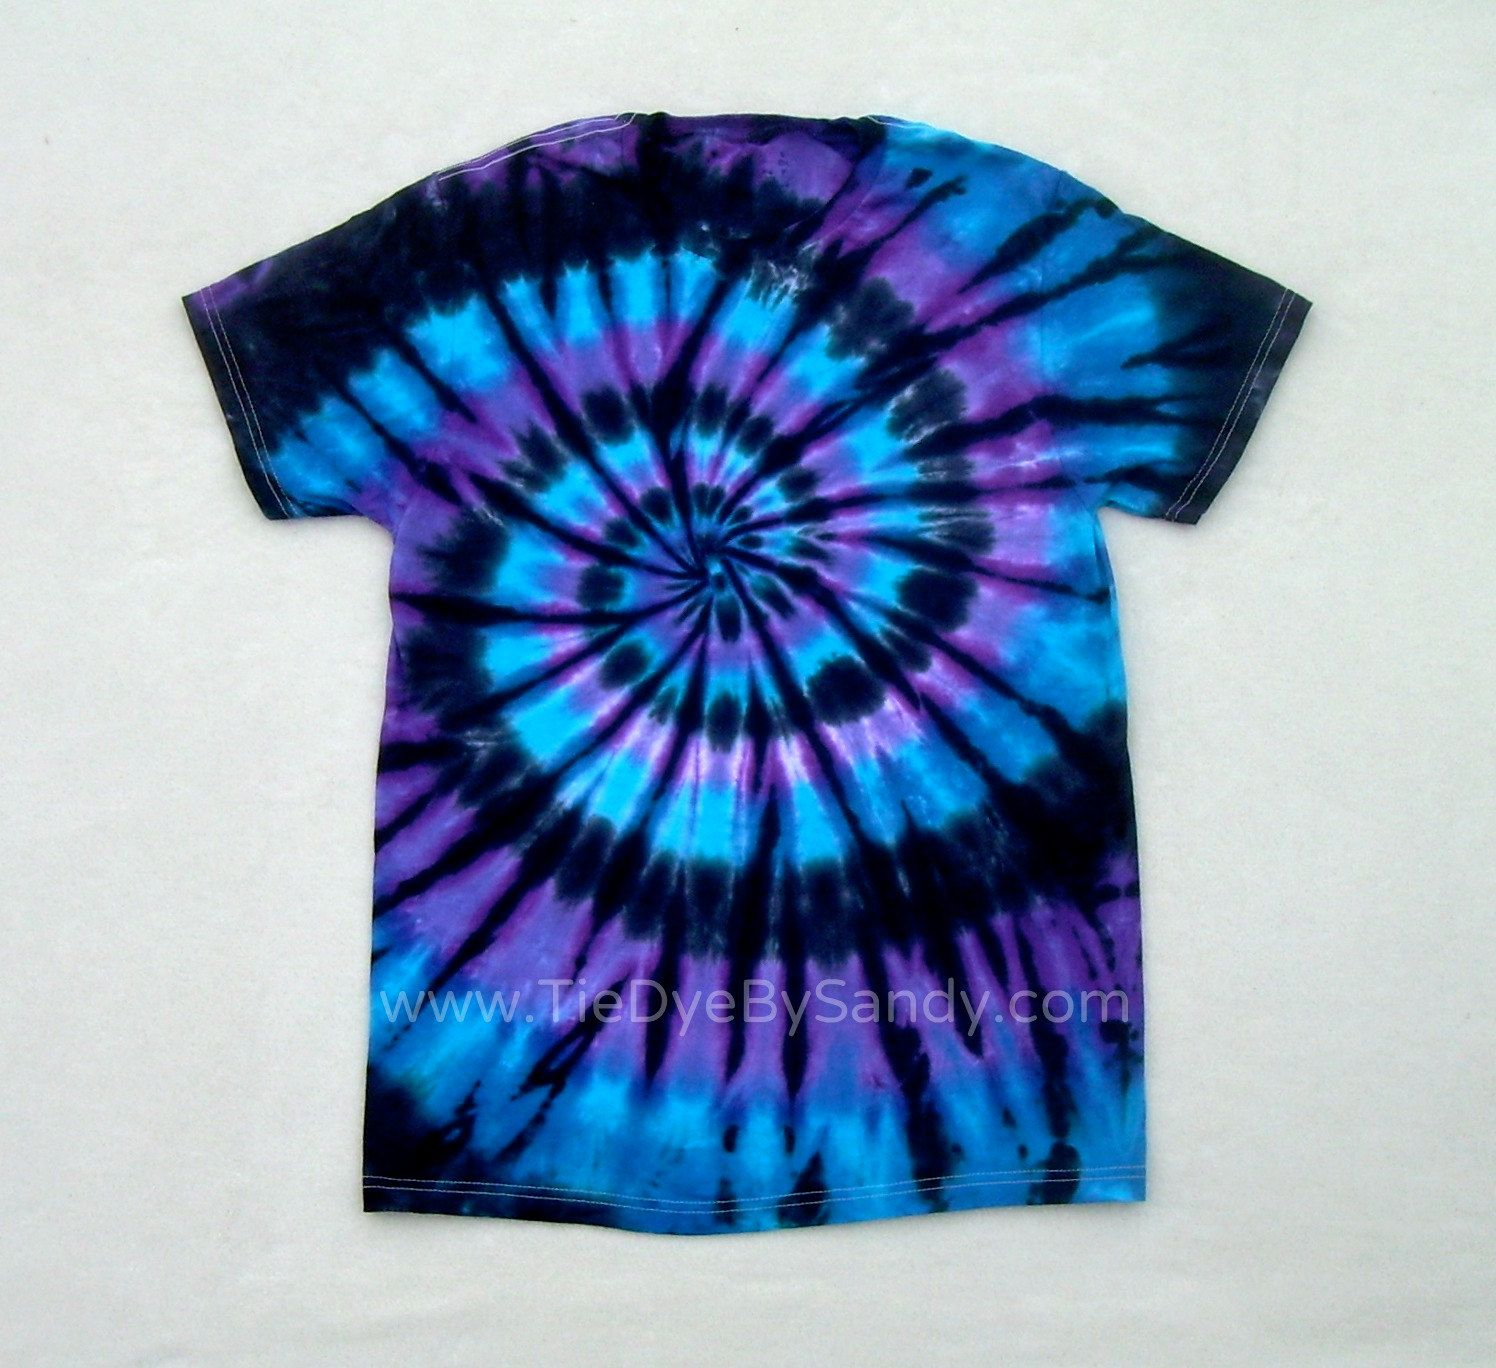 4cd26edf Tie Dye Shirt Moon Shadow Spiral Blue Purple Black (18.99 USD) by  TieDyeBySandy